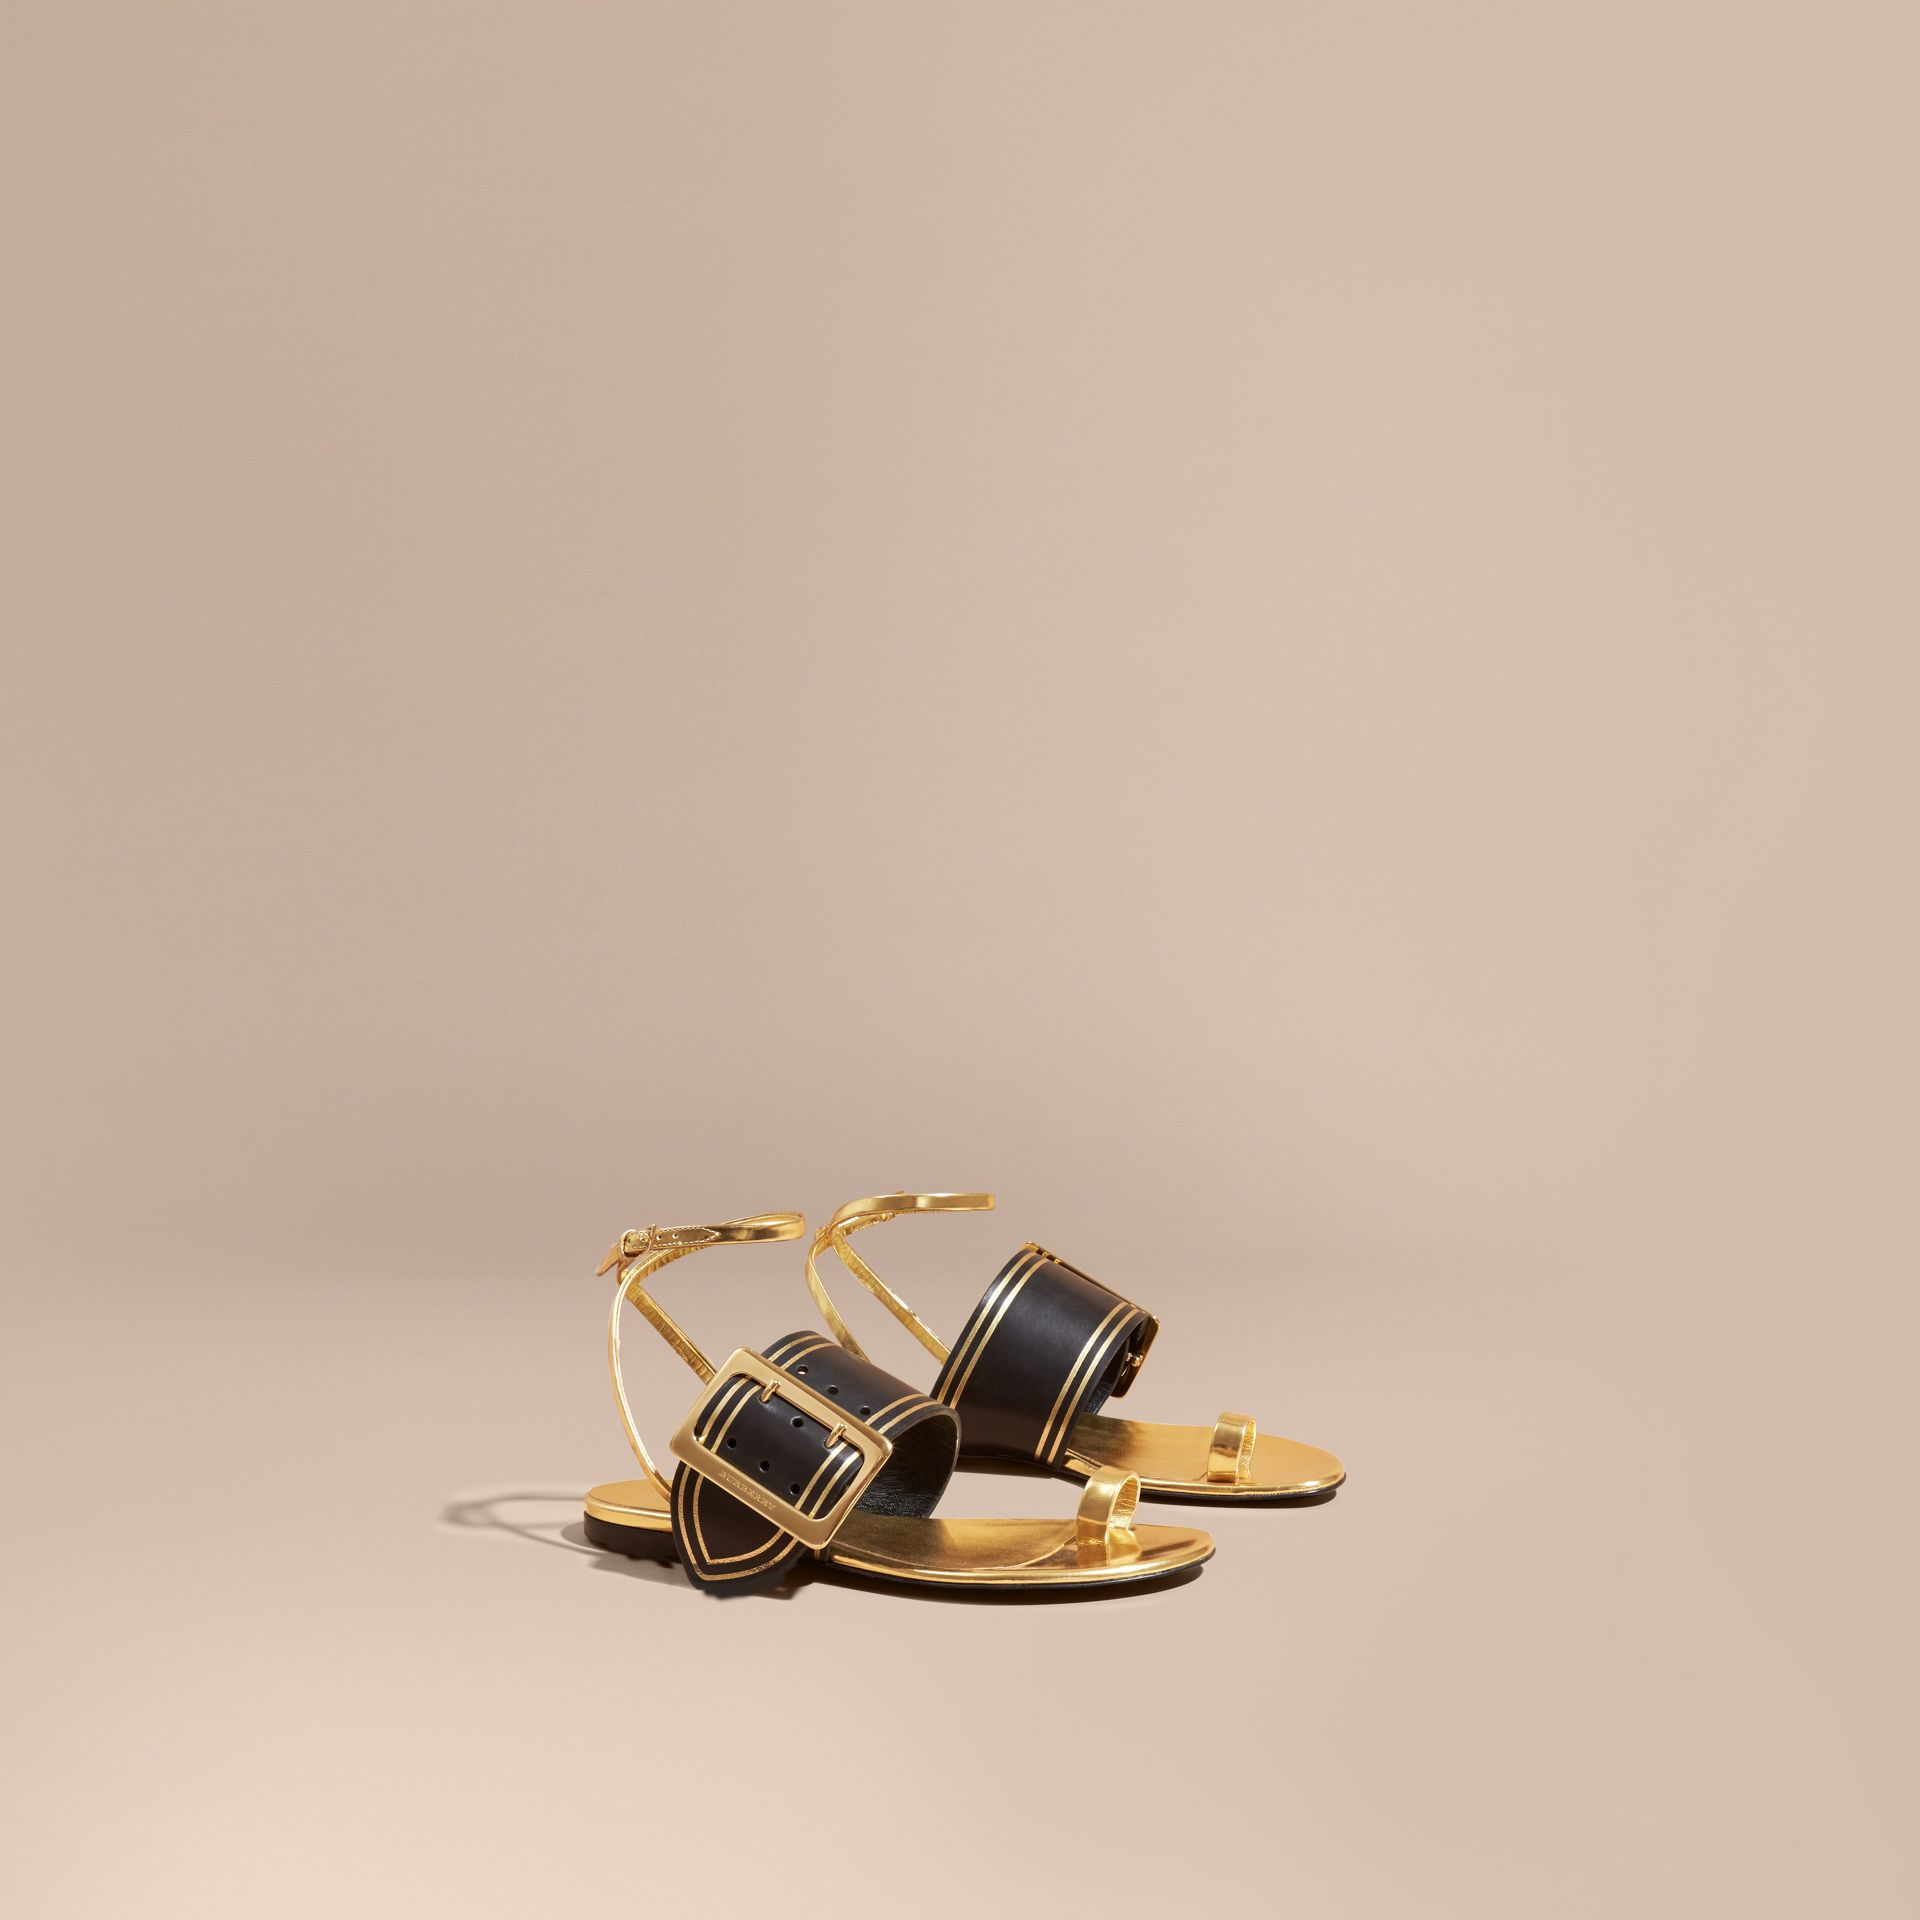 Antique gold Two-tone Leather Sandals with Buckles - gallery image 1